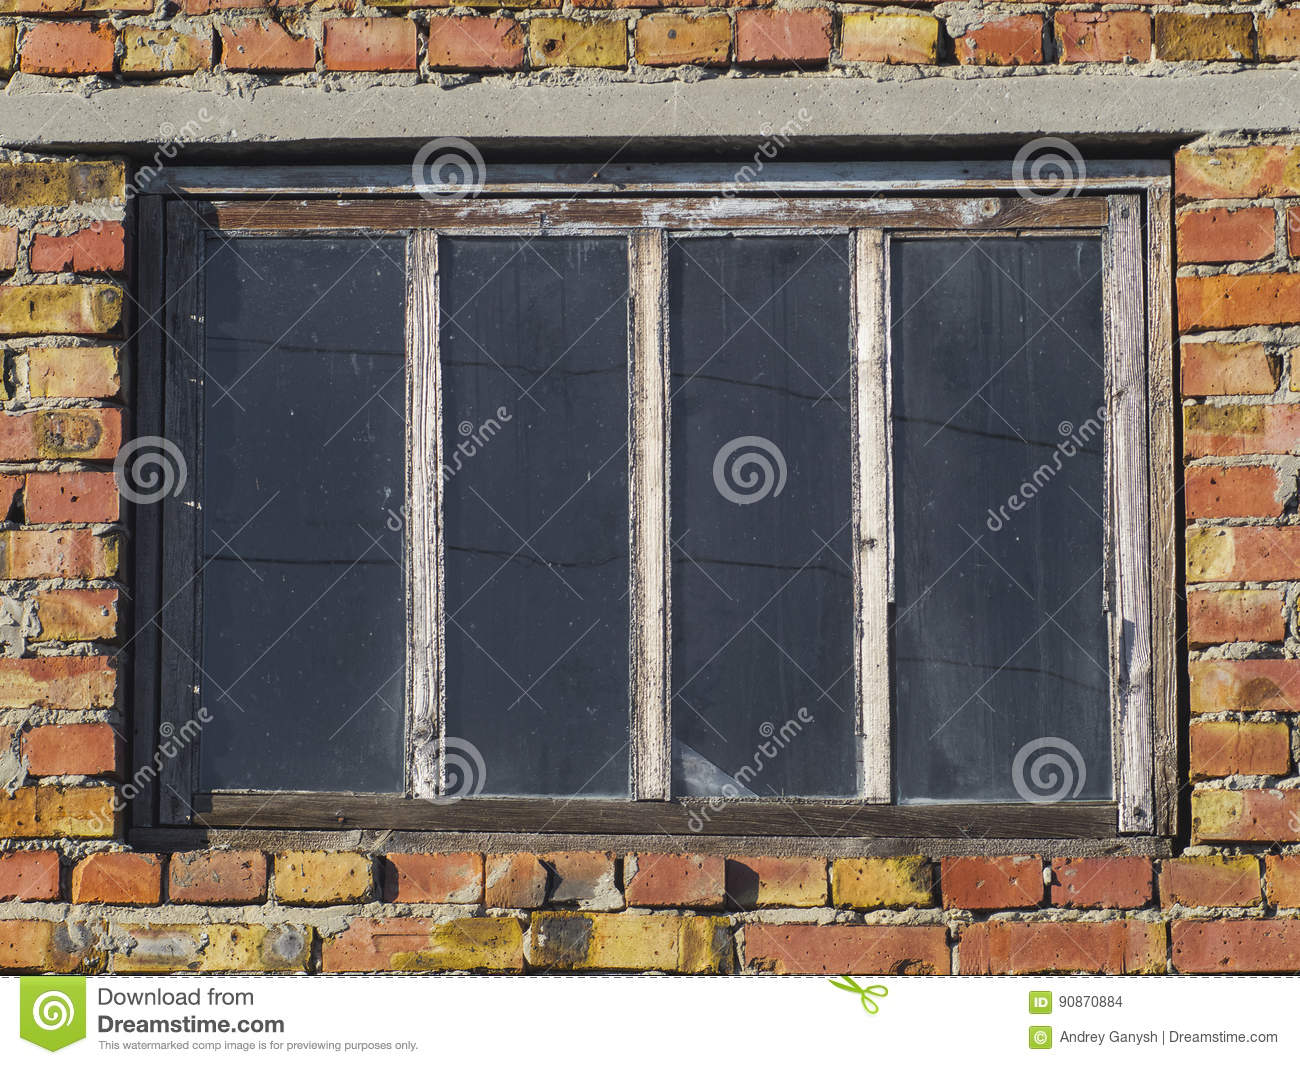 Texture Of Brick Wall And Windows Stock Photo - Image of ...